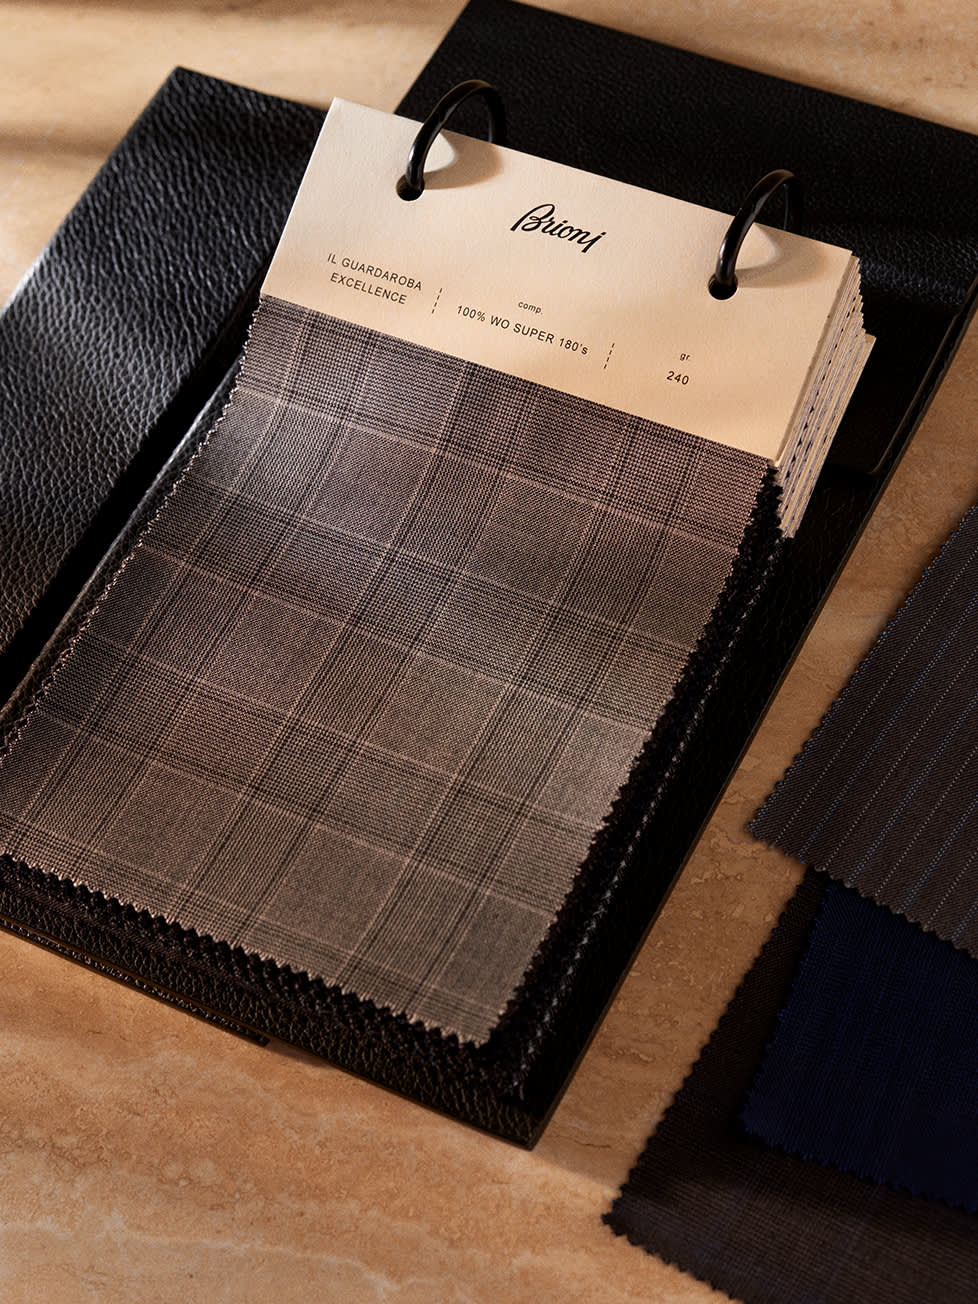 A selection of Brioni bespoke fabrics